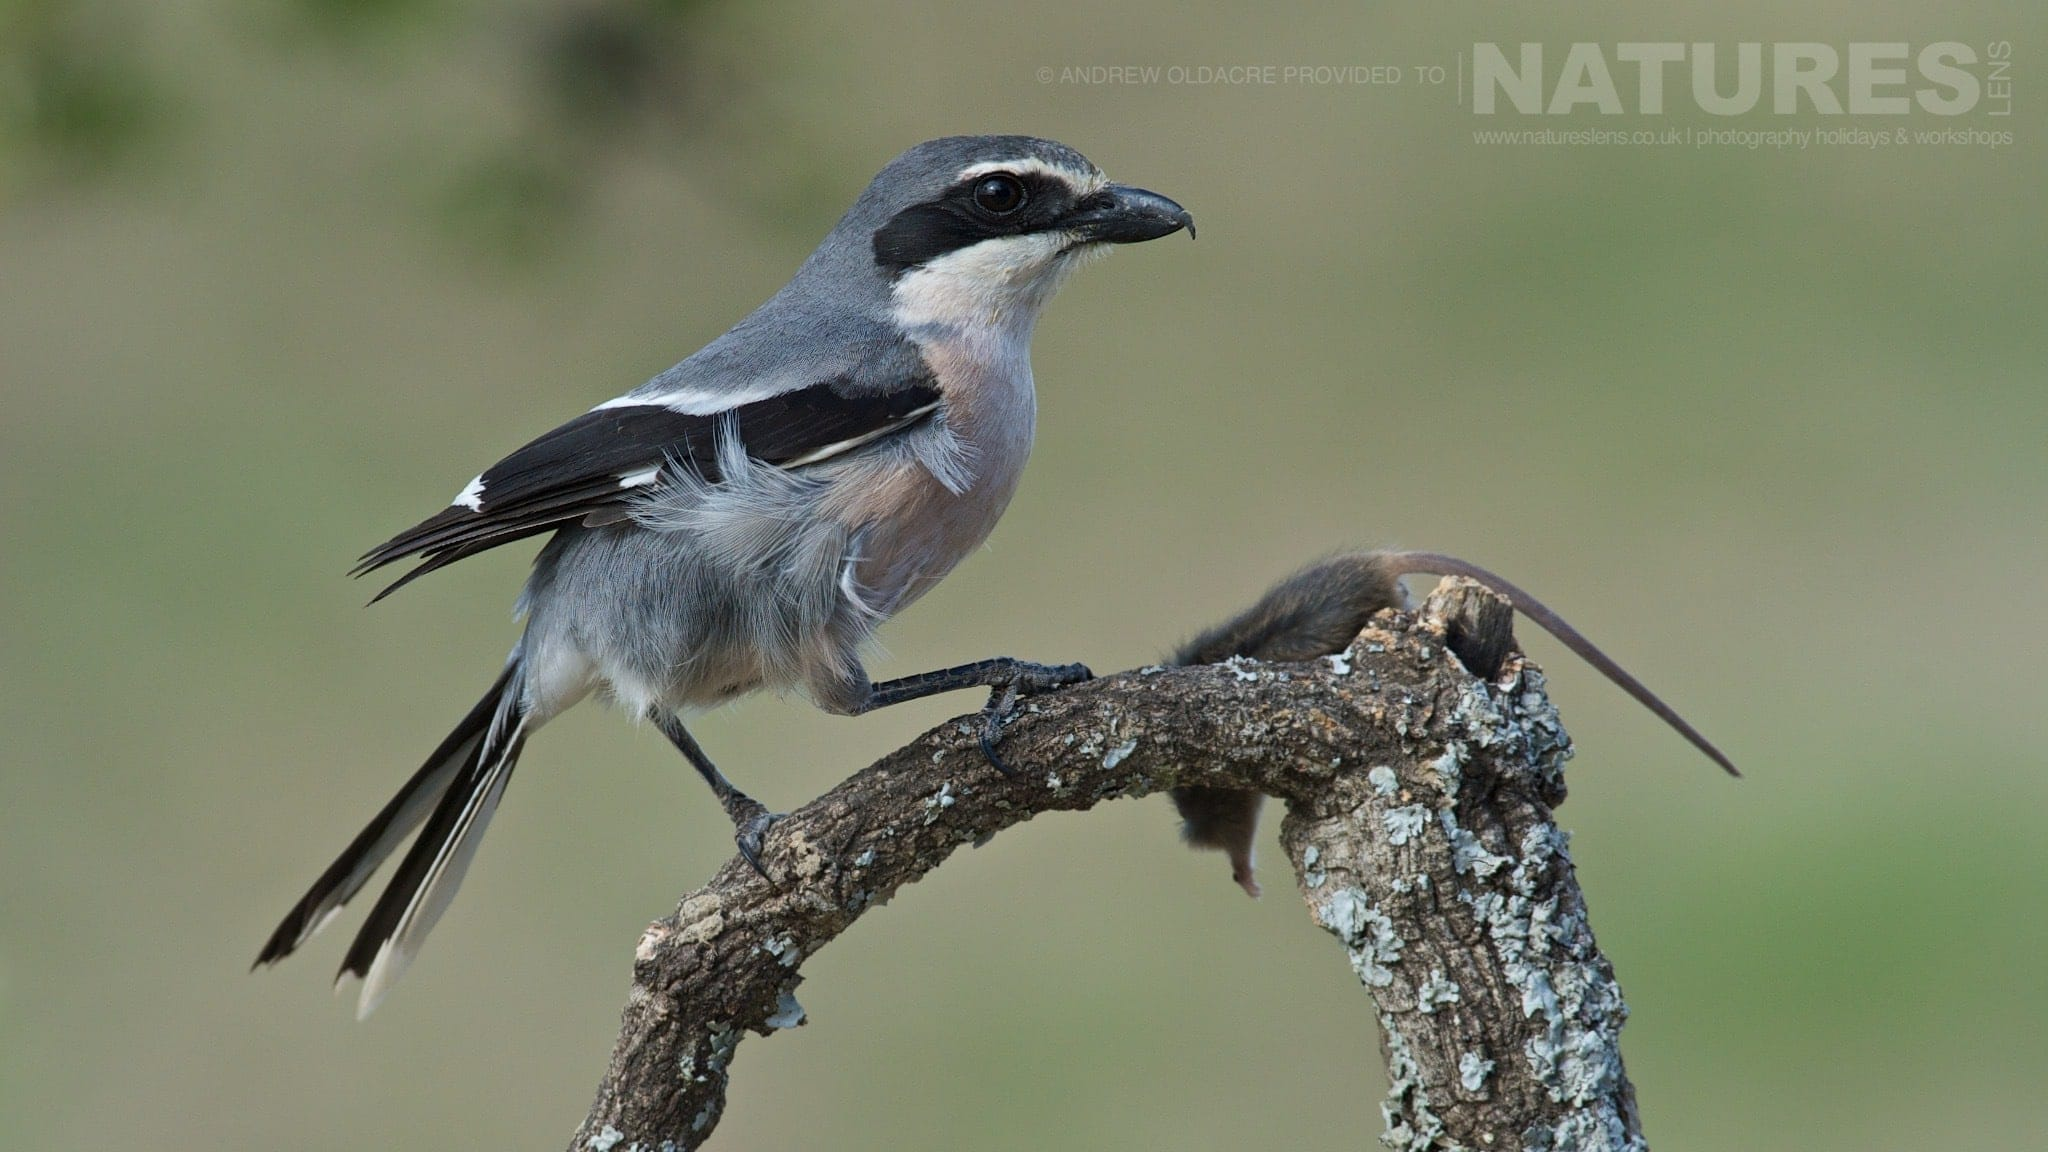 One of the Southern Grey Shrikes found on the Spanish plains - photographed on the NaturesLens Birds of Calera Photography Holiday